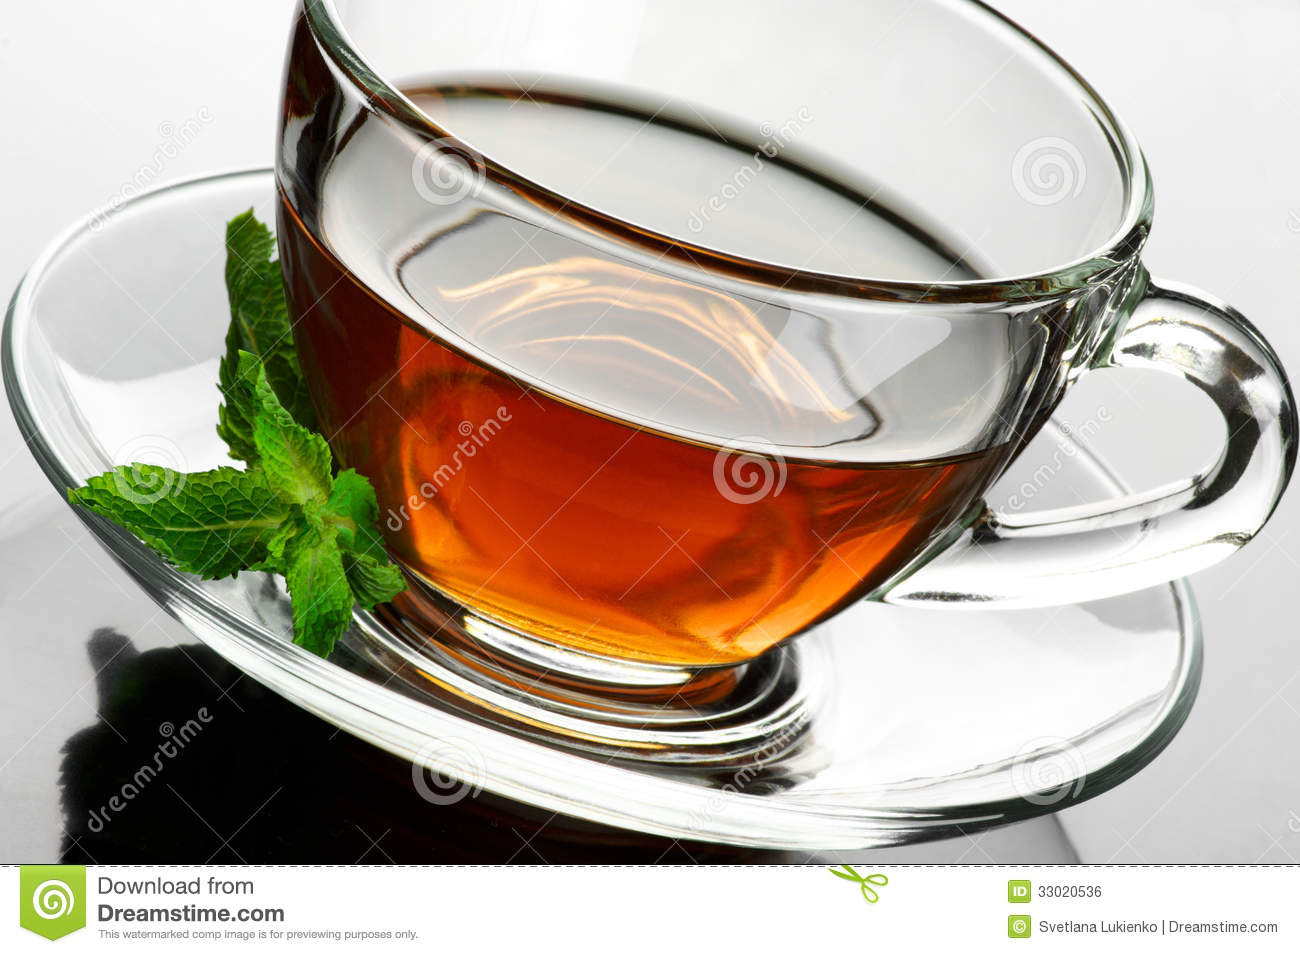 tea cup royalty free stock image  image  - tea cup royalty free stock image